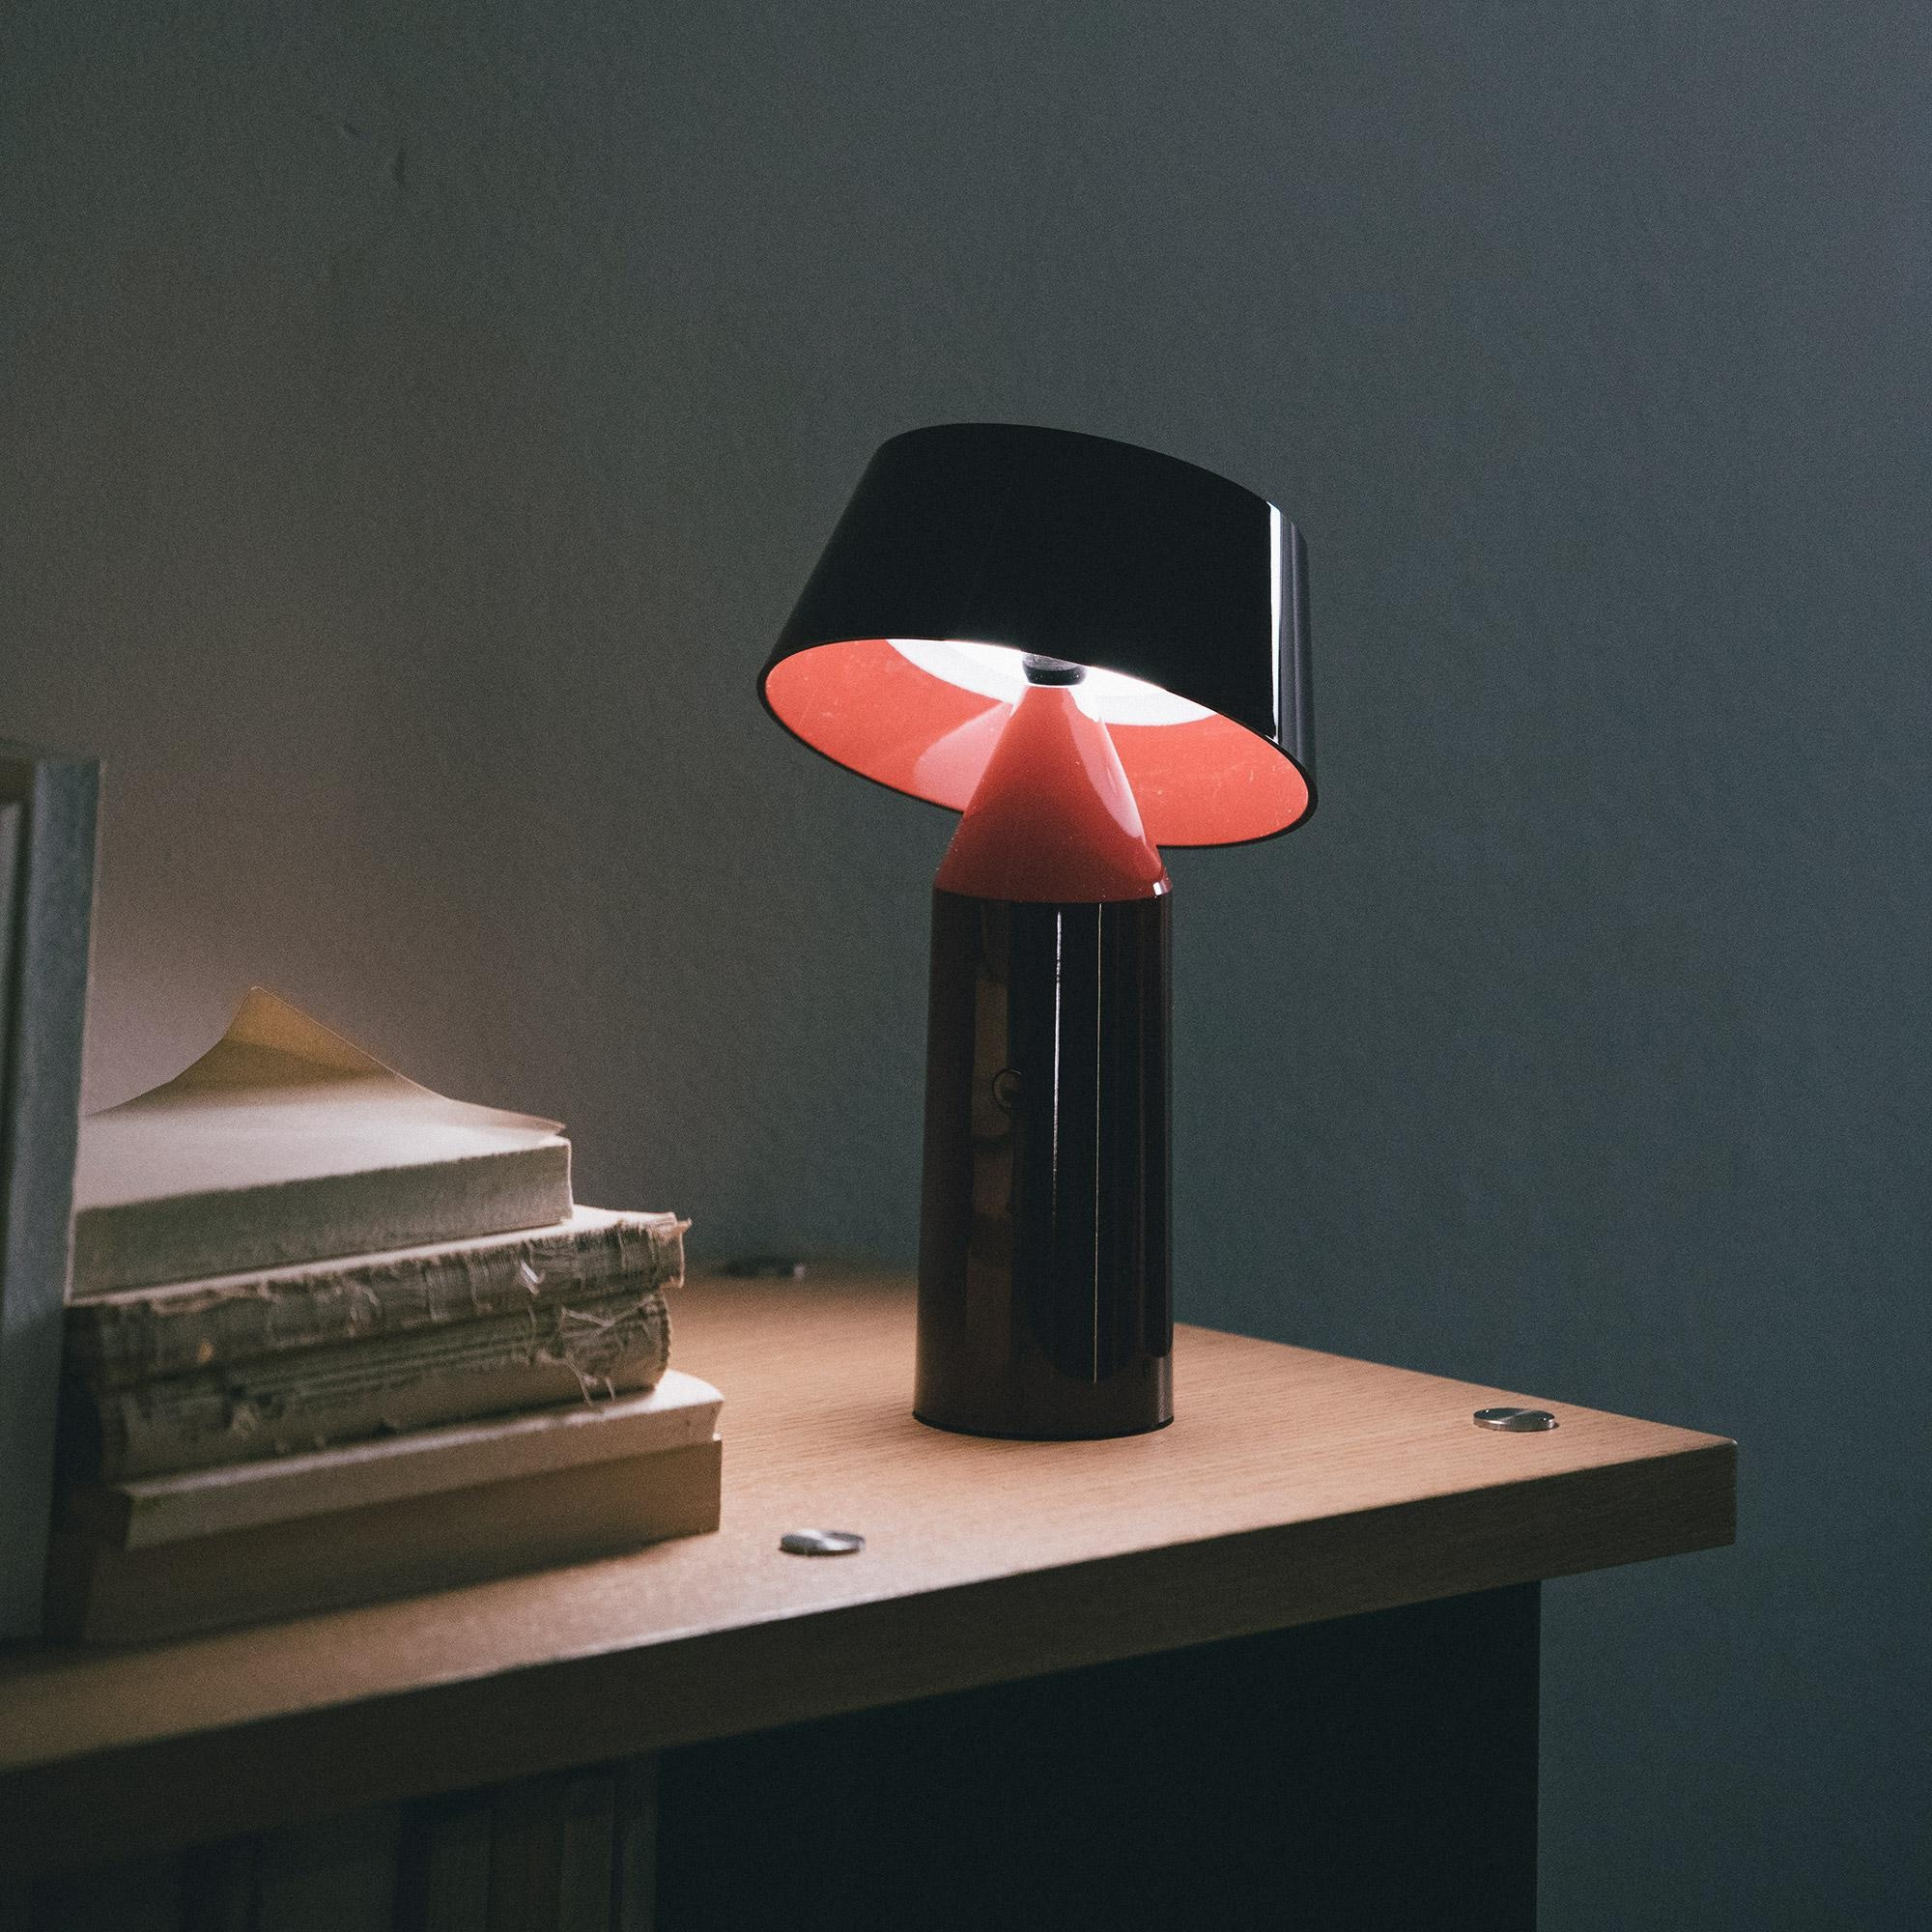 Bicoca Portable Table Lamp - <p>The Bicoca is born with the optimism of brightening life and accompanying the good times, wherever you go. This new colorful, lightweight portable lamp projects an intimate light that adds warmth to all your personal spaces.</p> <p>Made of polycarbonate, Bicoca begins with an overlay of basic geometric figures, with a tiltable shade to direct the light. Three separate accessories increase the applicability and versatility of the lamp. A powerful magnet can be affixed to the bottom of the fixture, allowing you to place it to metal surfaces -even vertical walls- defying gravity. An armchair accessory drapes over armrests, sofa backs, or headboards, so you can bring your Bicoca to all your personal reading spaces. </p>  | Matter of Stuff